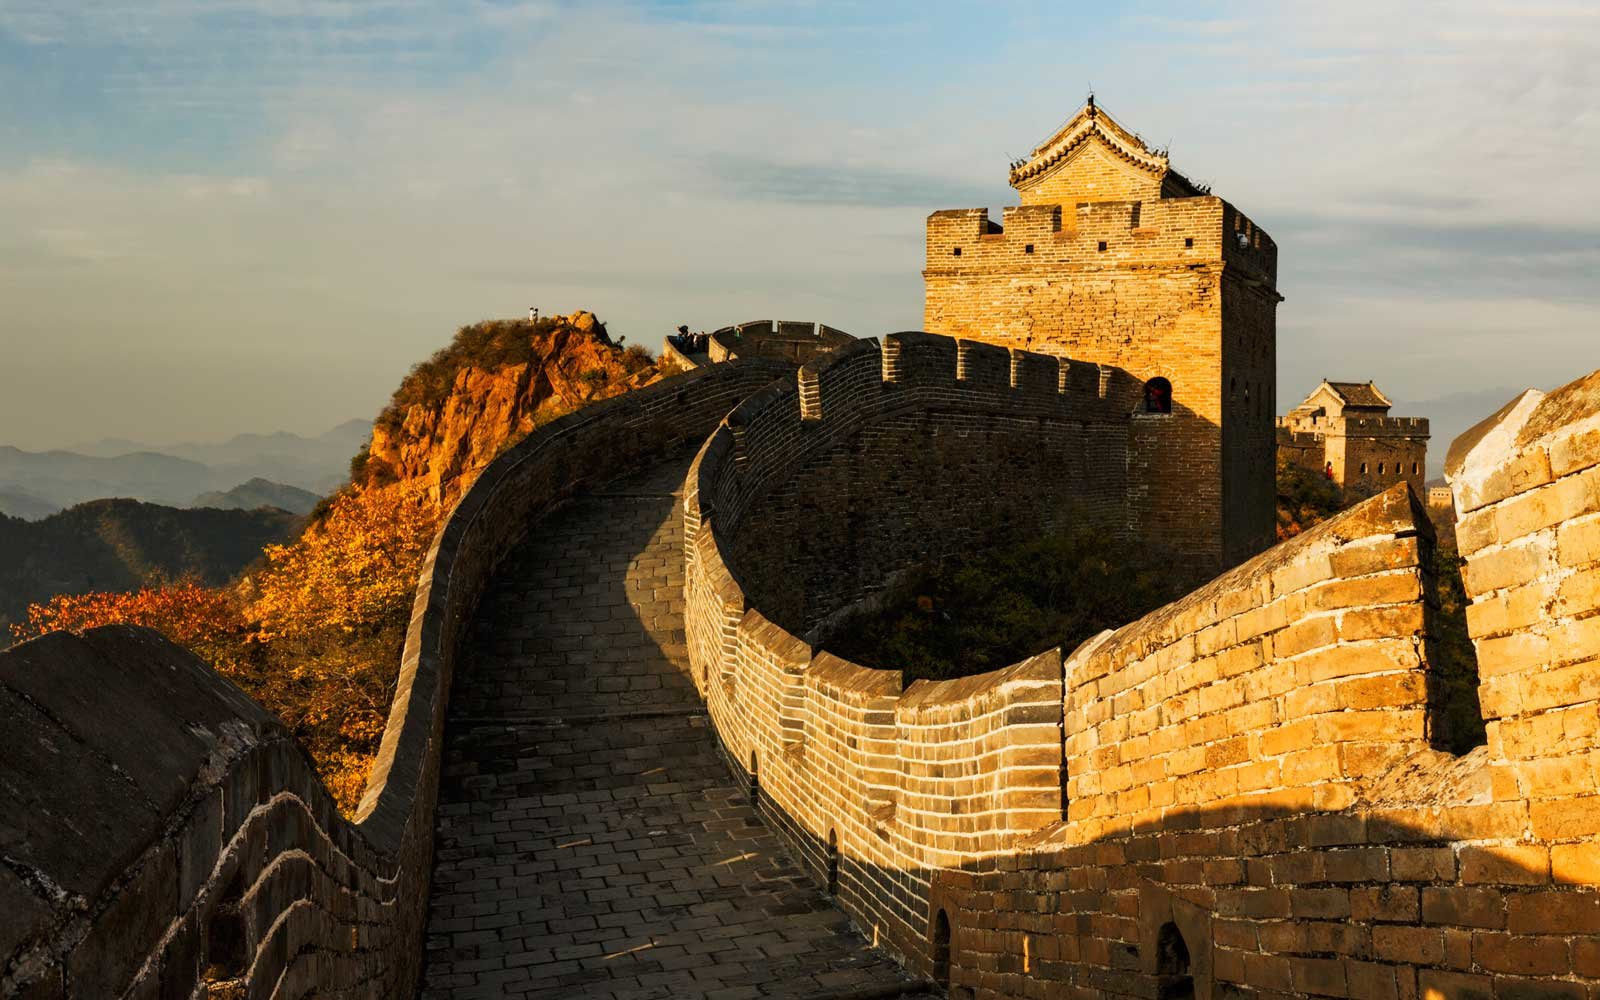 Great Wall of China and Jinshanling Mountains at sunrise, Jinshanling, China